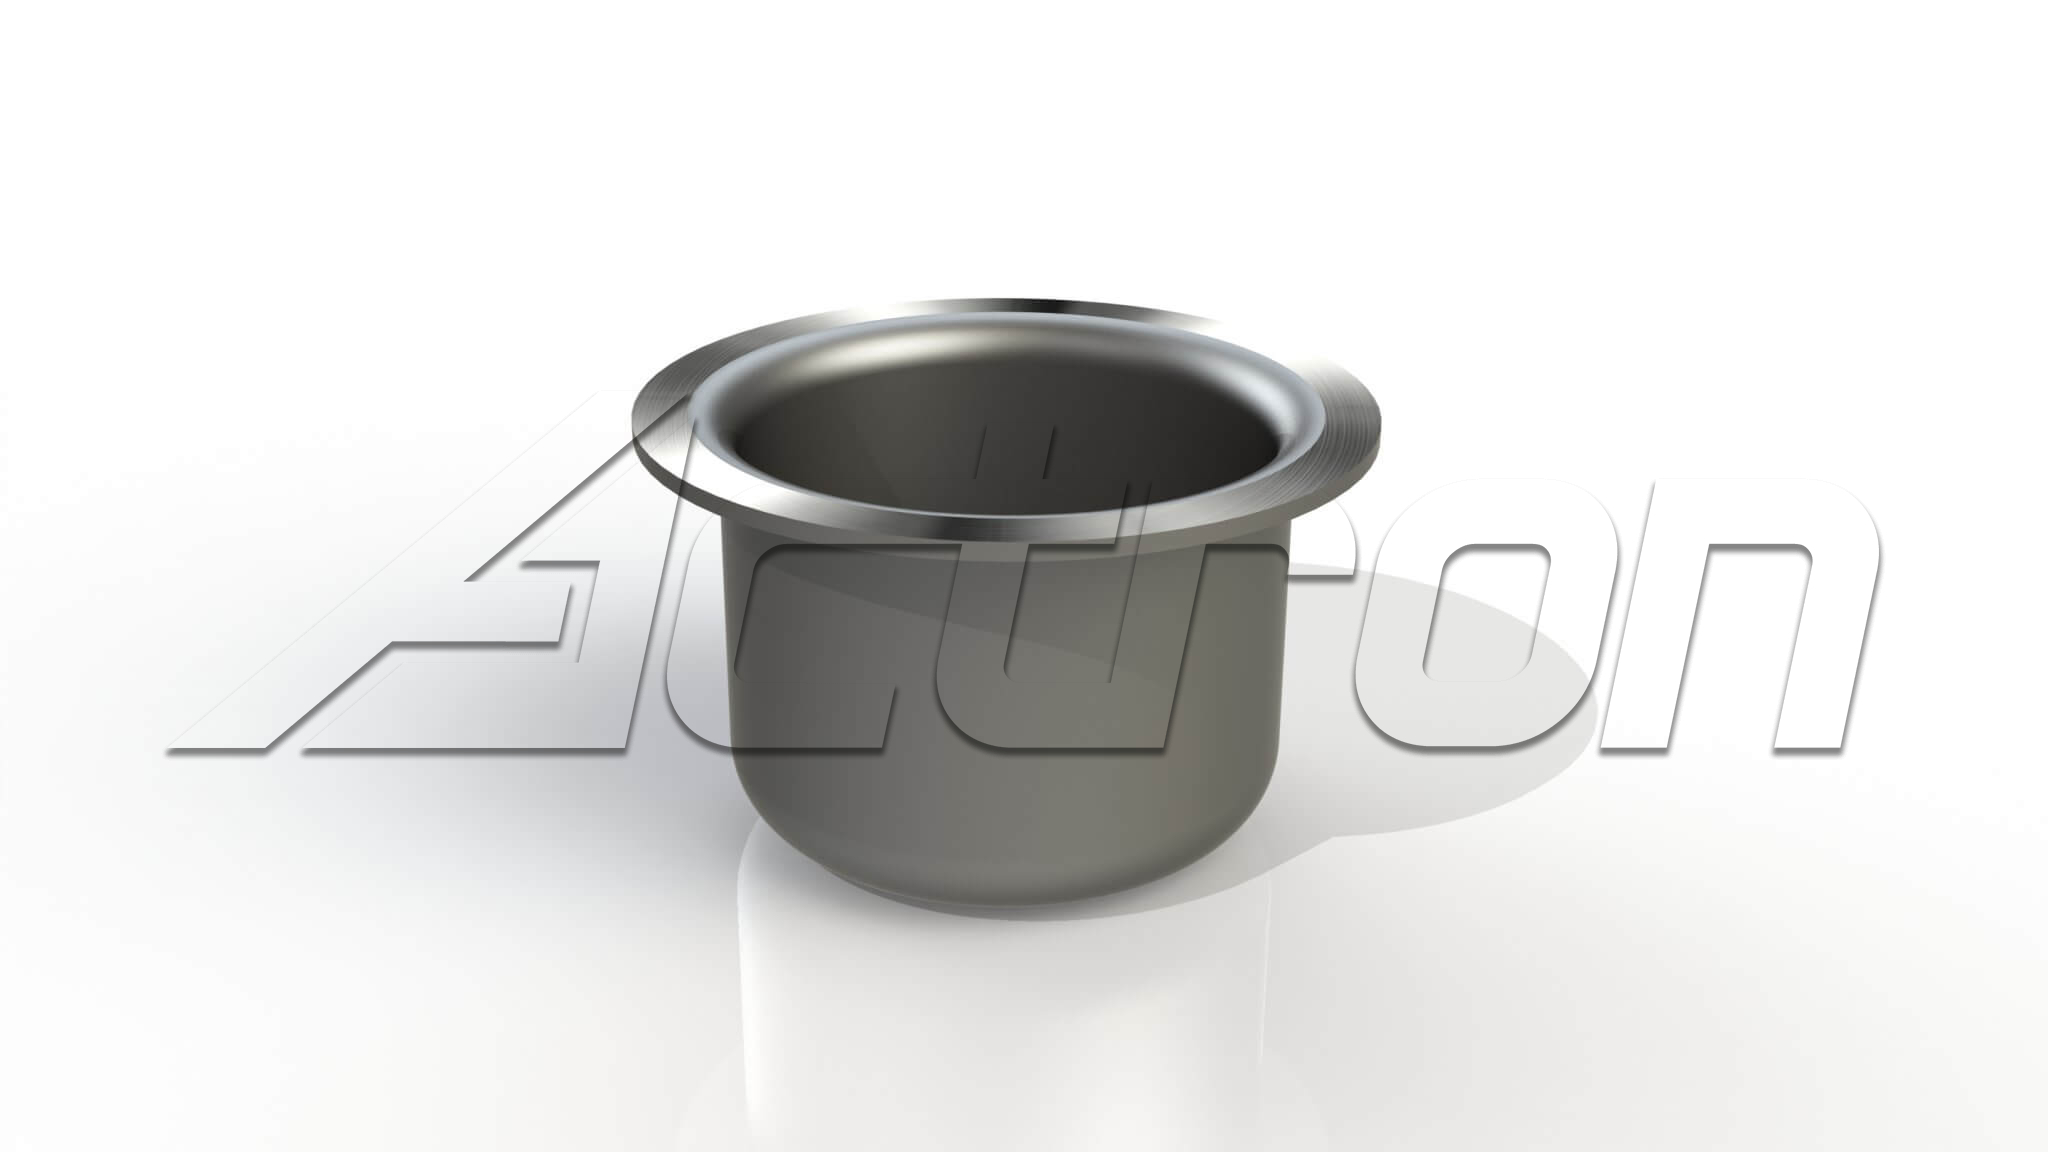 cup-pull-8211-finger-5148-a45002.jpg